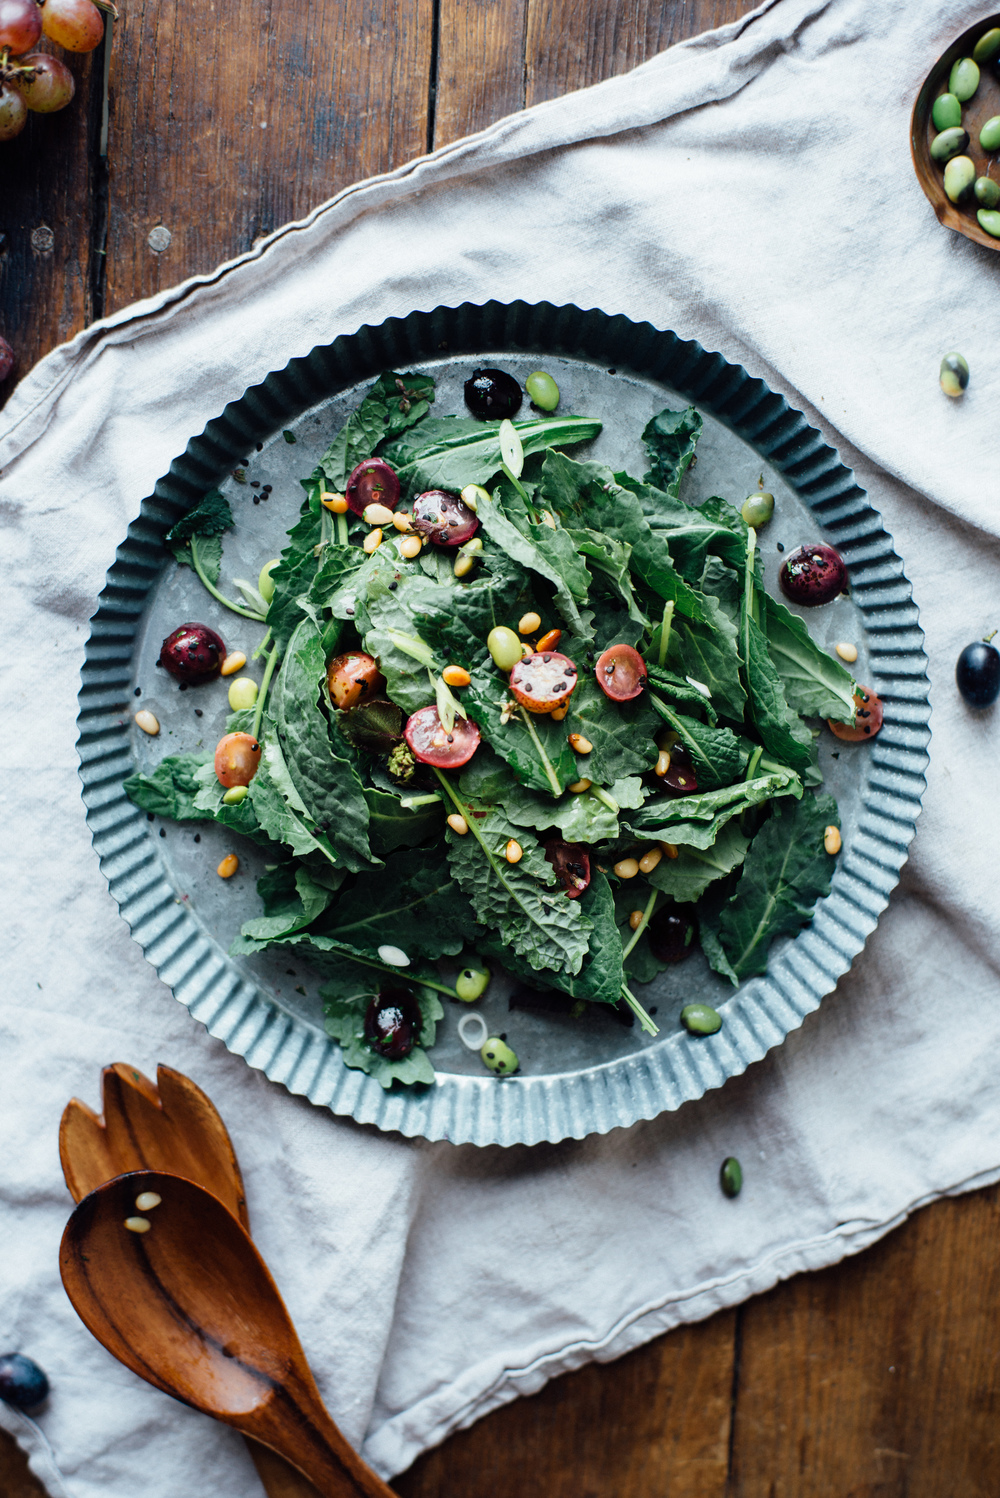 warm sautéed grapes, autumn kale + edamame salad w/ shiso vinaigrette